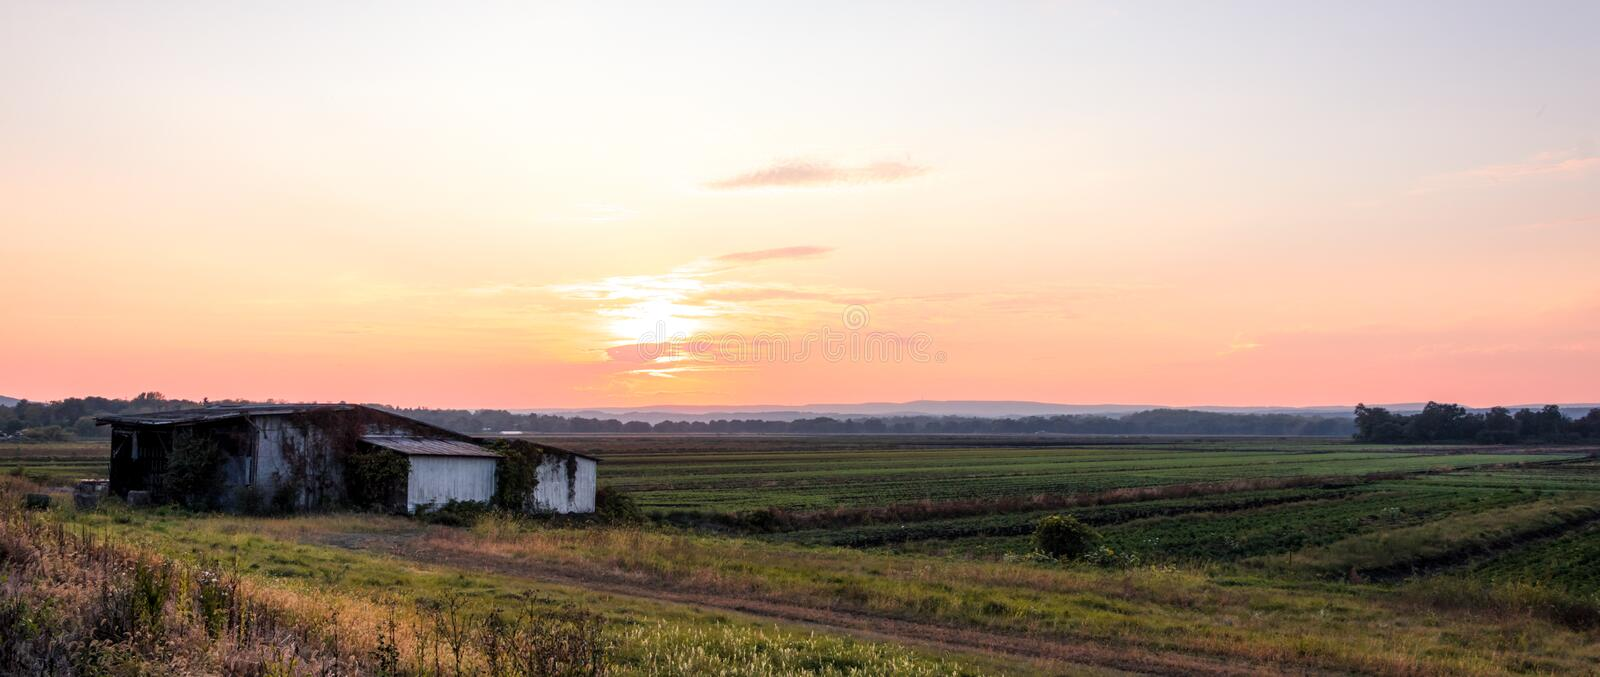 Old white barn covered in vines on a humble farm under late summer sunset stock images